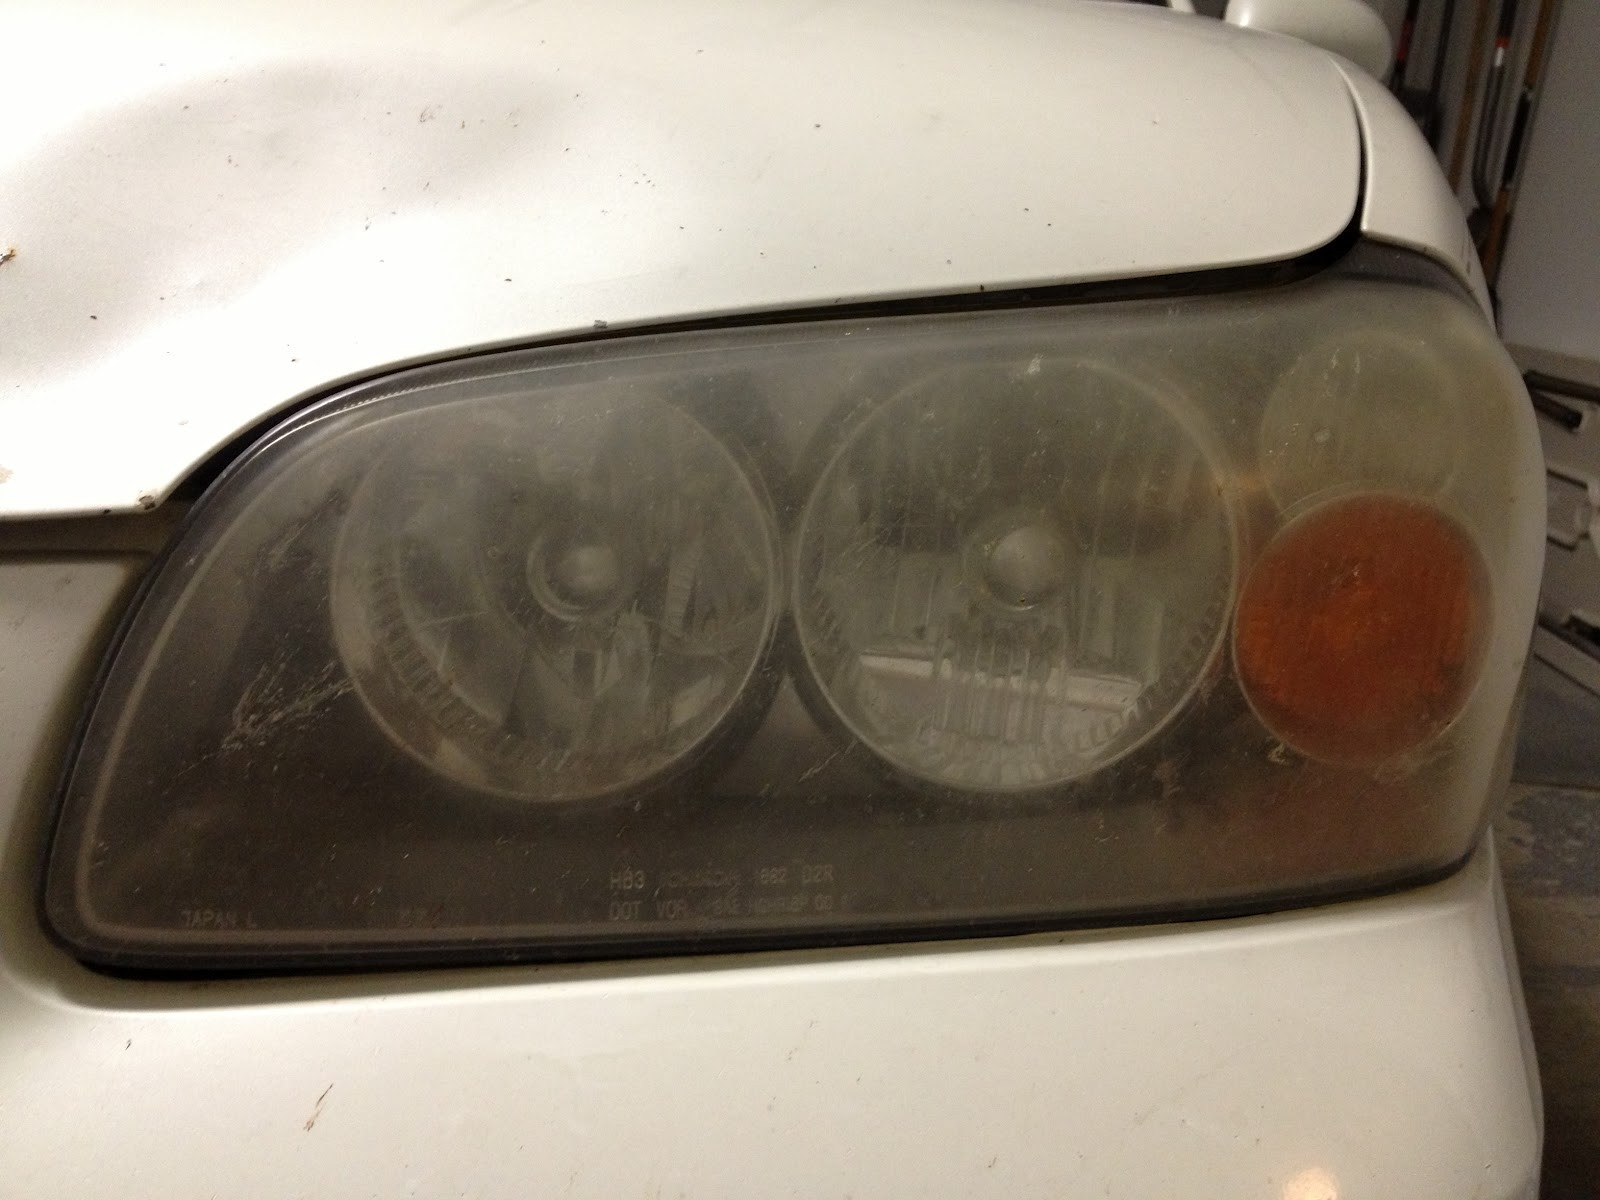 Best ideas about DIY Headlight Cleaner . Save or Pin The DIY Guinea Pig Headlight Cleaner Now.